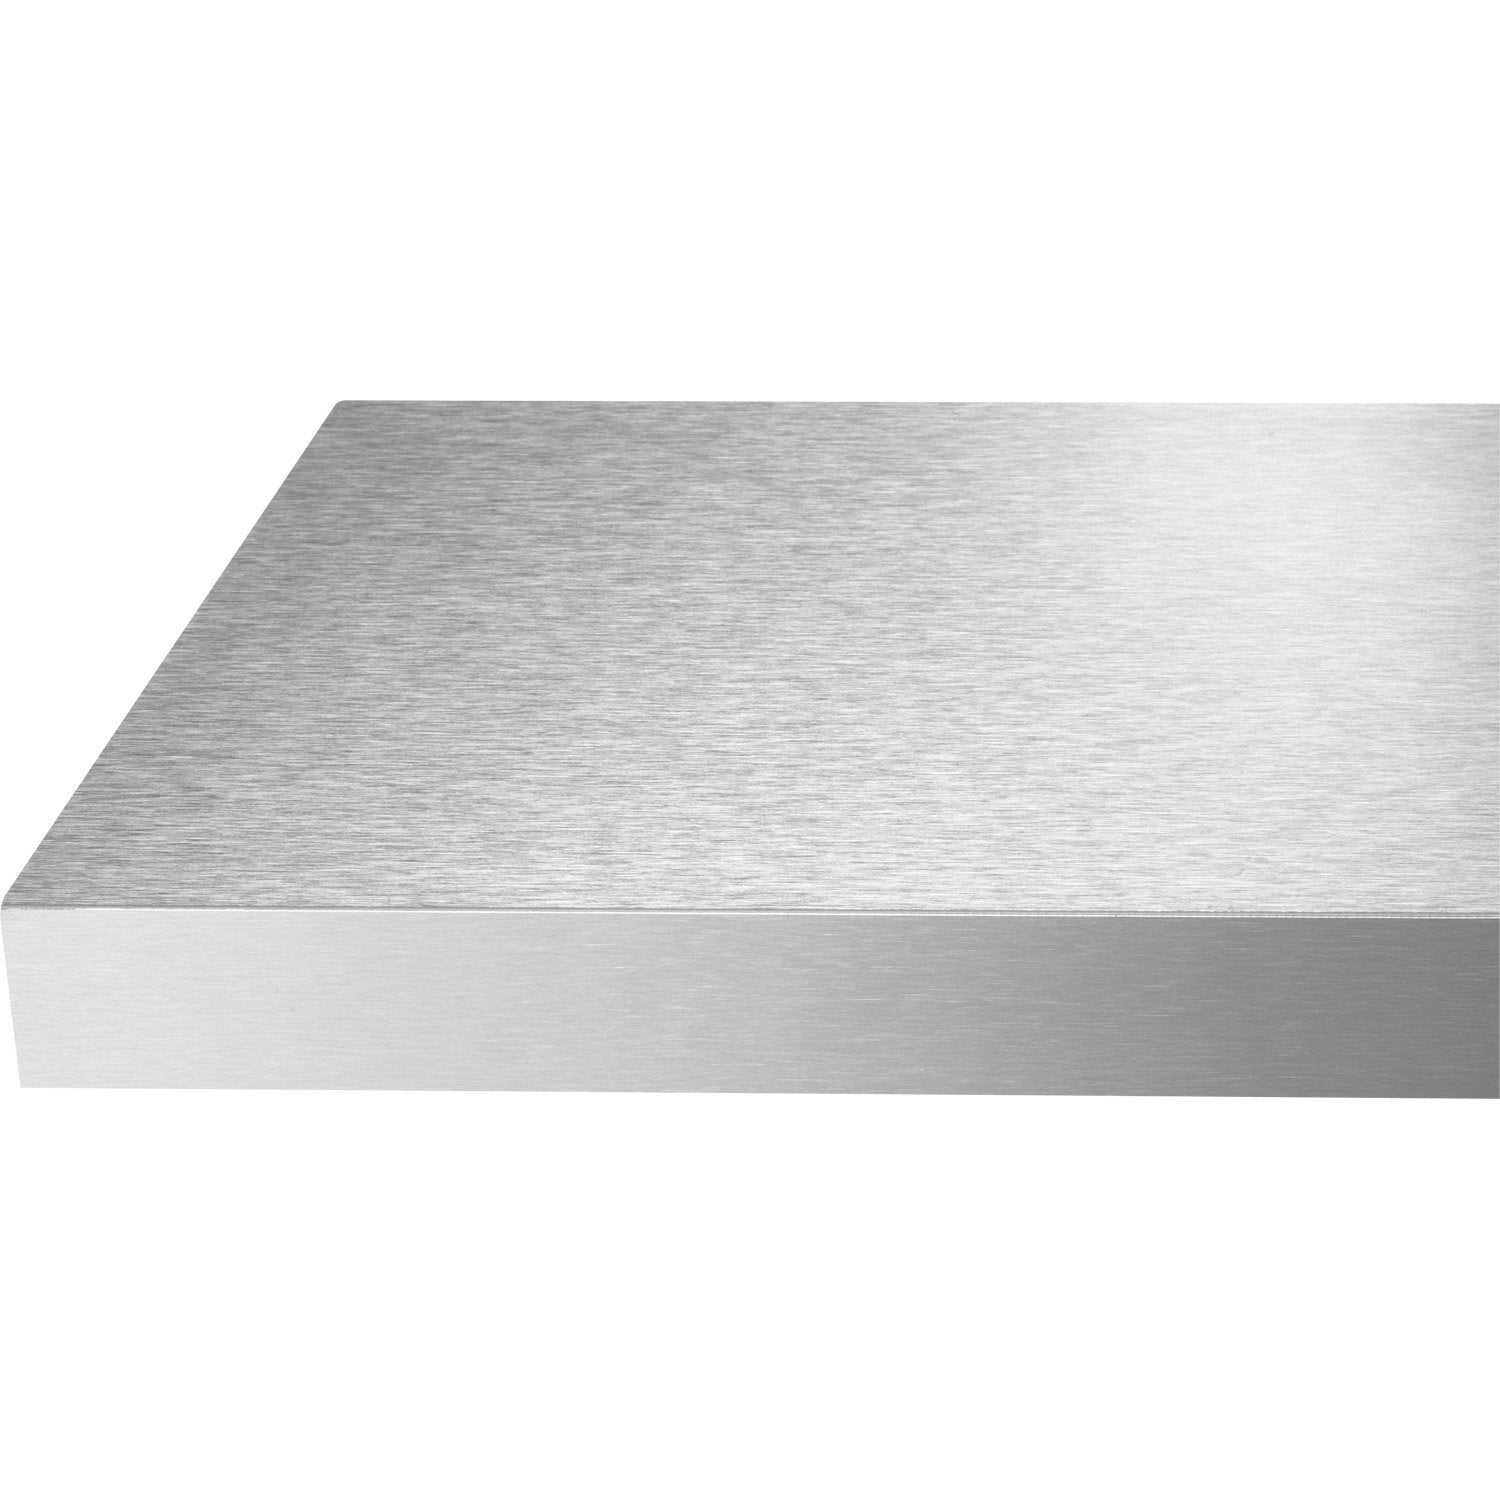 Chant de plan de travail stratifi fa on inox mat l 4 5 cm ep 1 mm leroy merlin for Plan de travail blanc laque leroy merlin